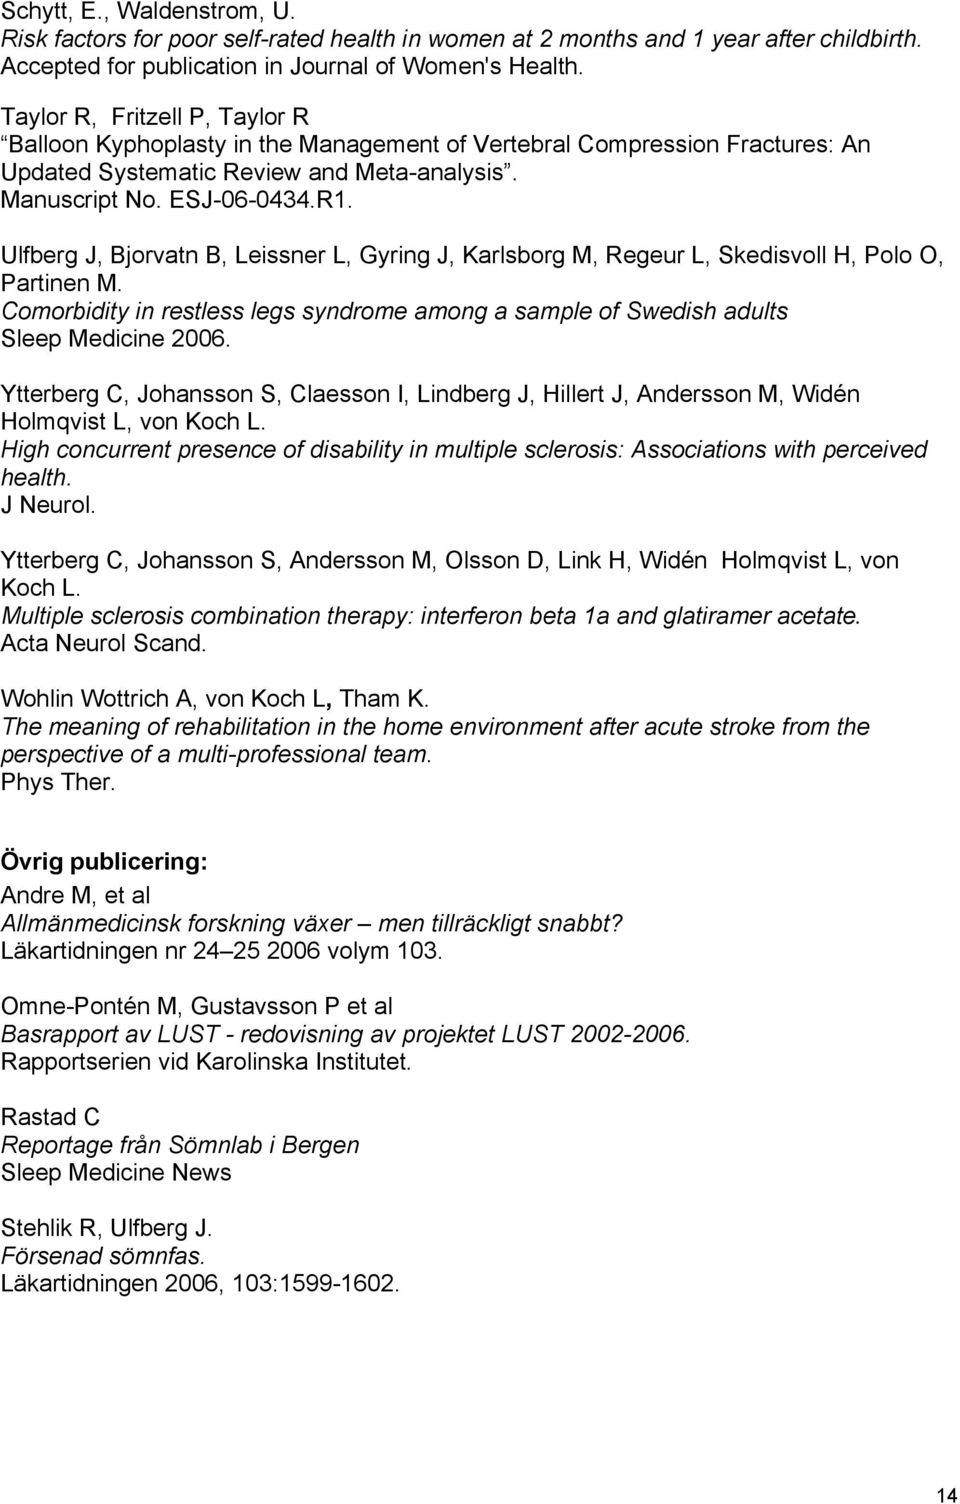 Ulfberg J, Bjorvatn B, Leissner L, Gyring J, Karlsborg M, Regeur L, Skedisvoll H, Polo O, Partinen M. Comorbidity in restless legs syndrome among a sample of Swedish adults Sleep Medicine 2006.